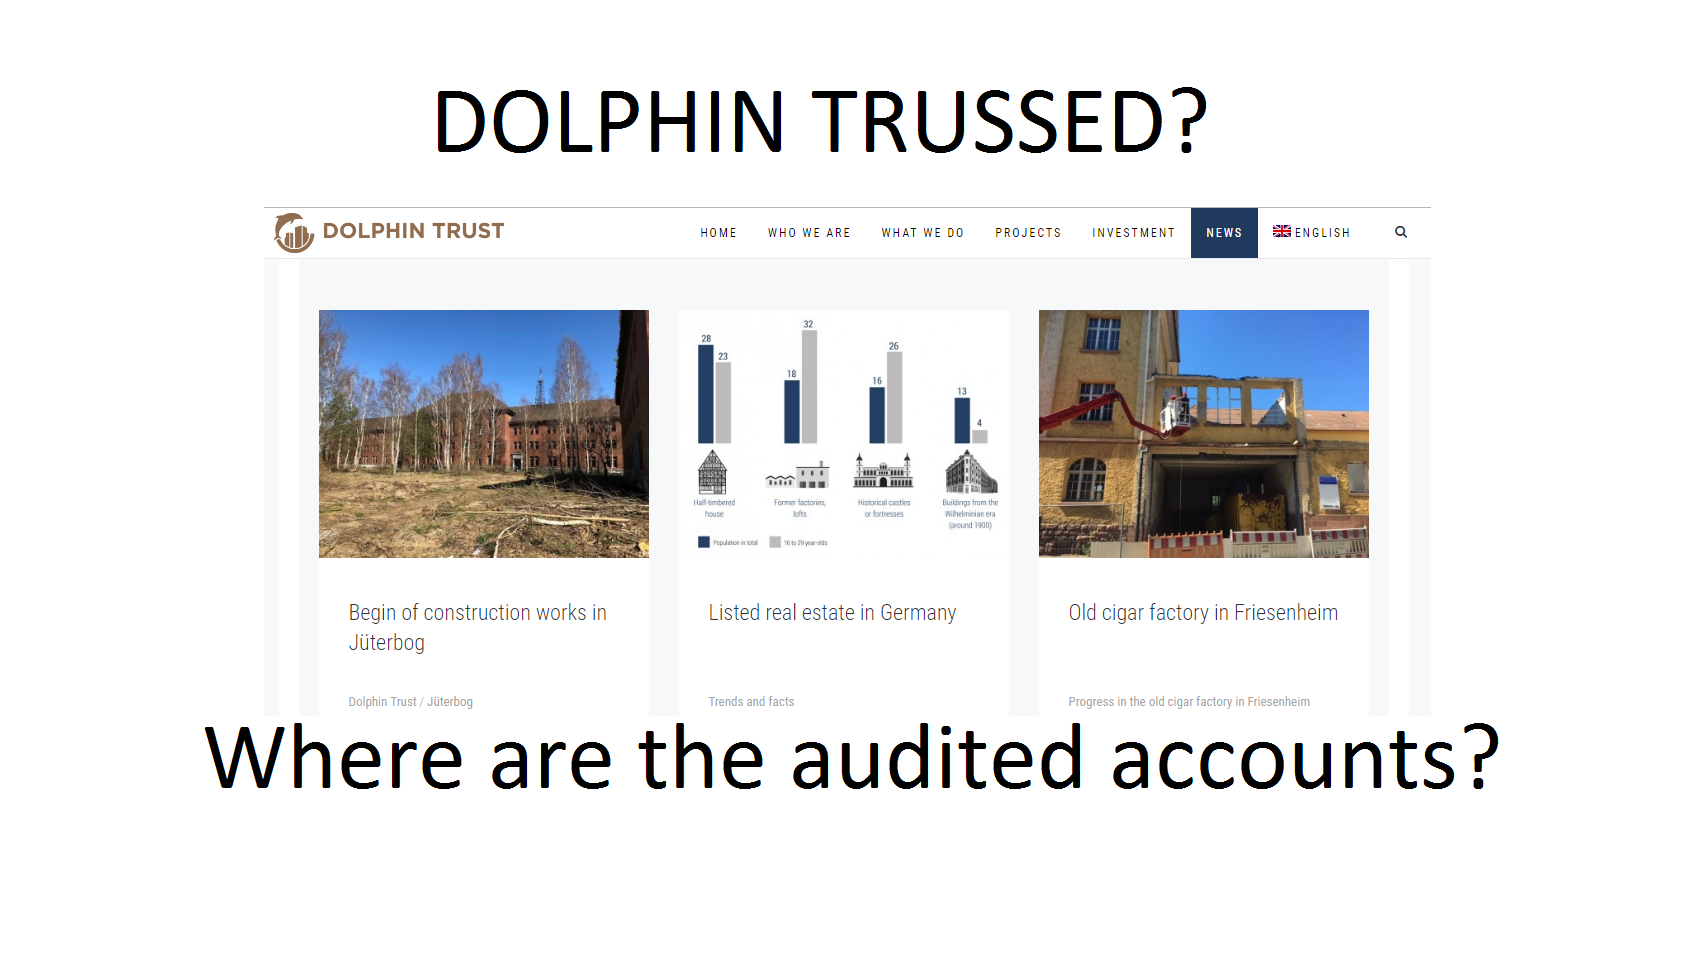 Pension Life Blog - Trussed by Dolphin Trust? - Dolphin Turust - trafalgar multi asset fund